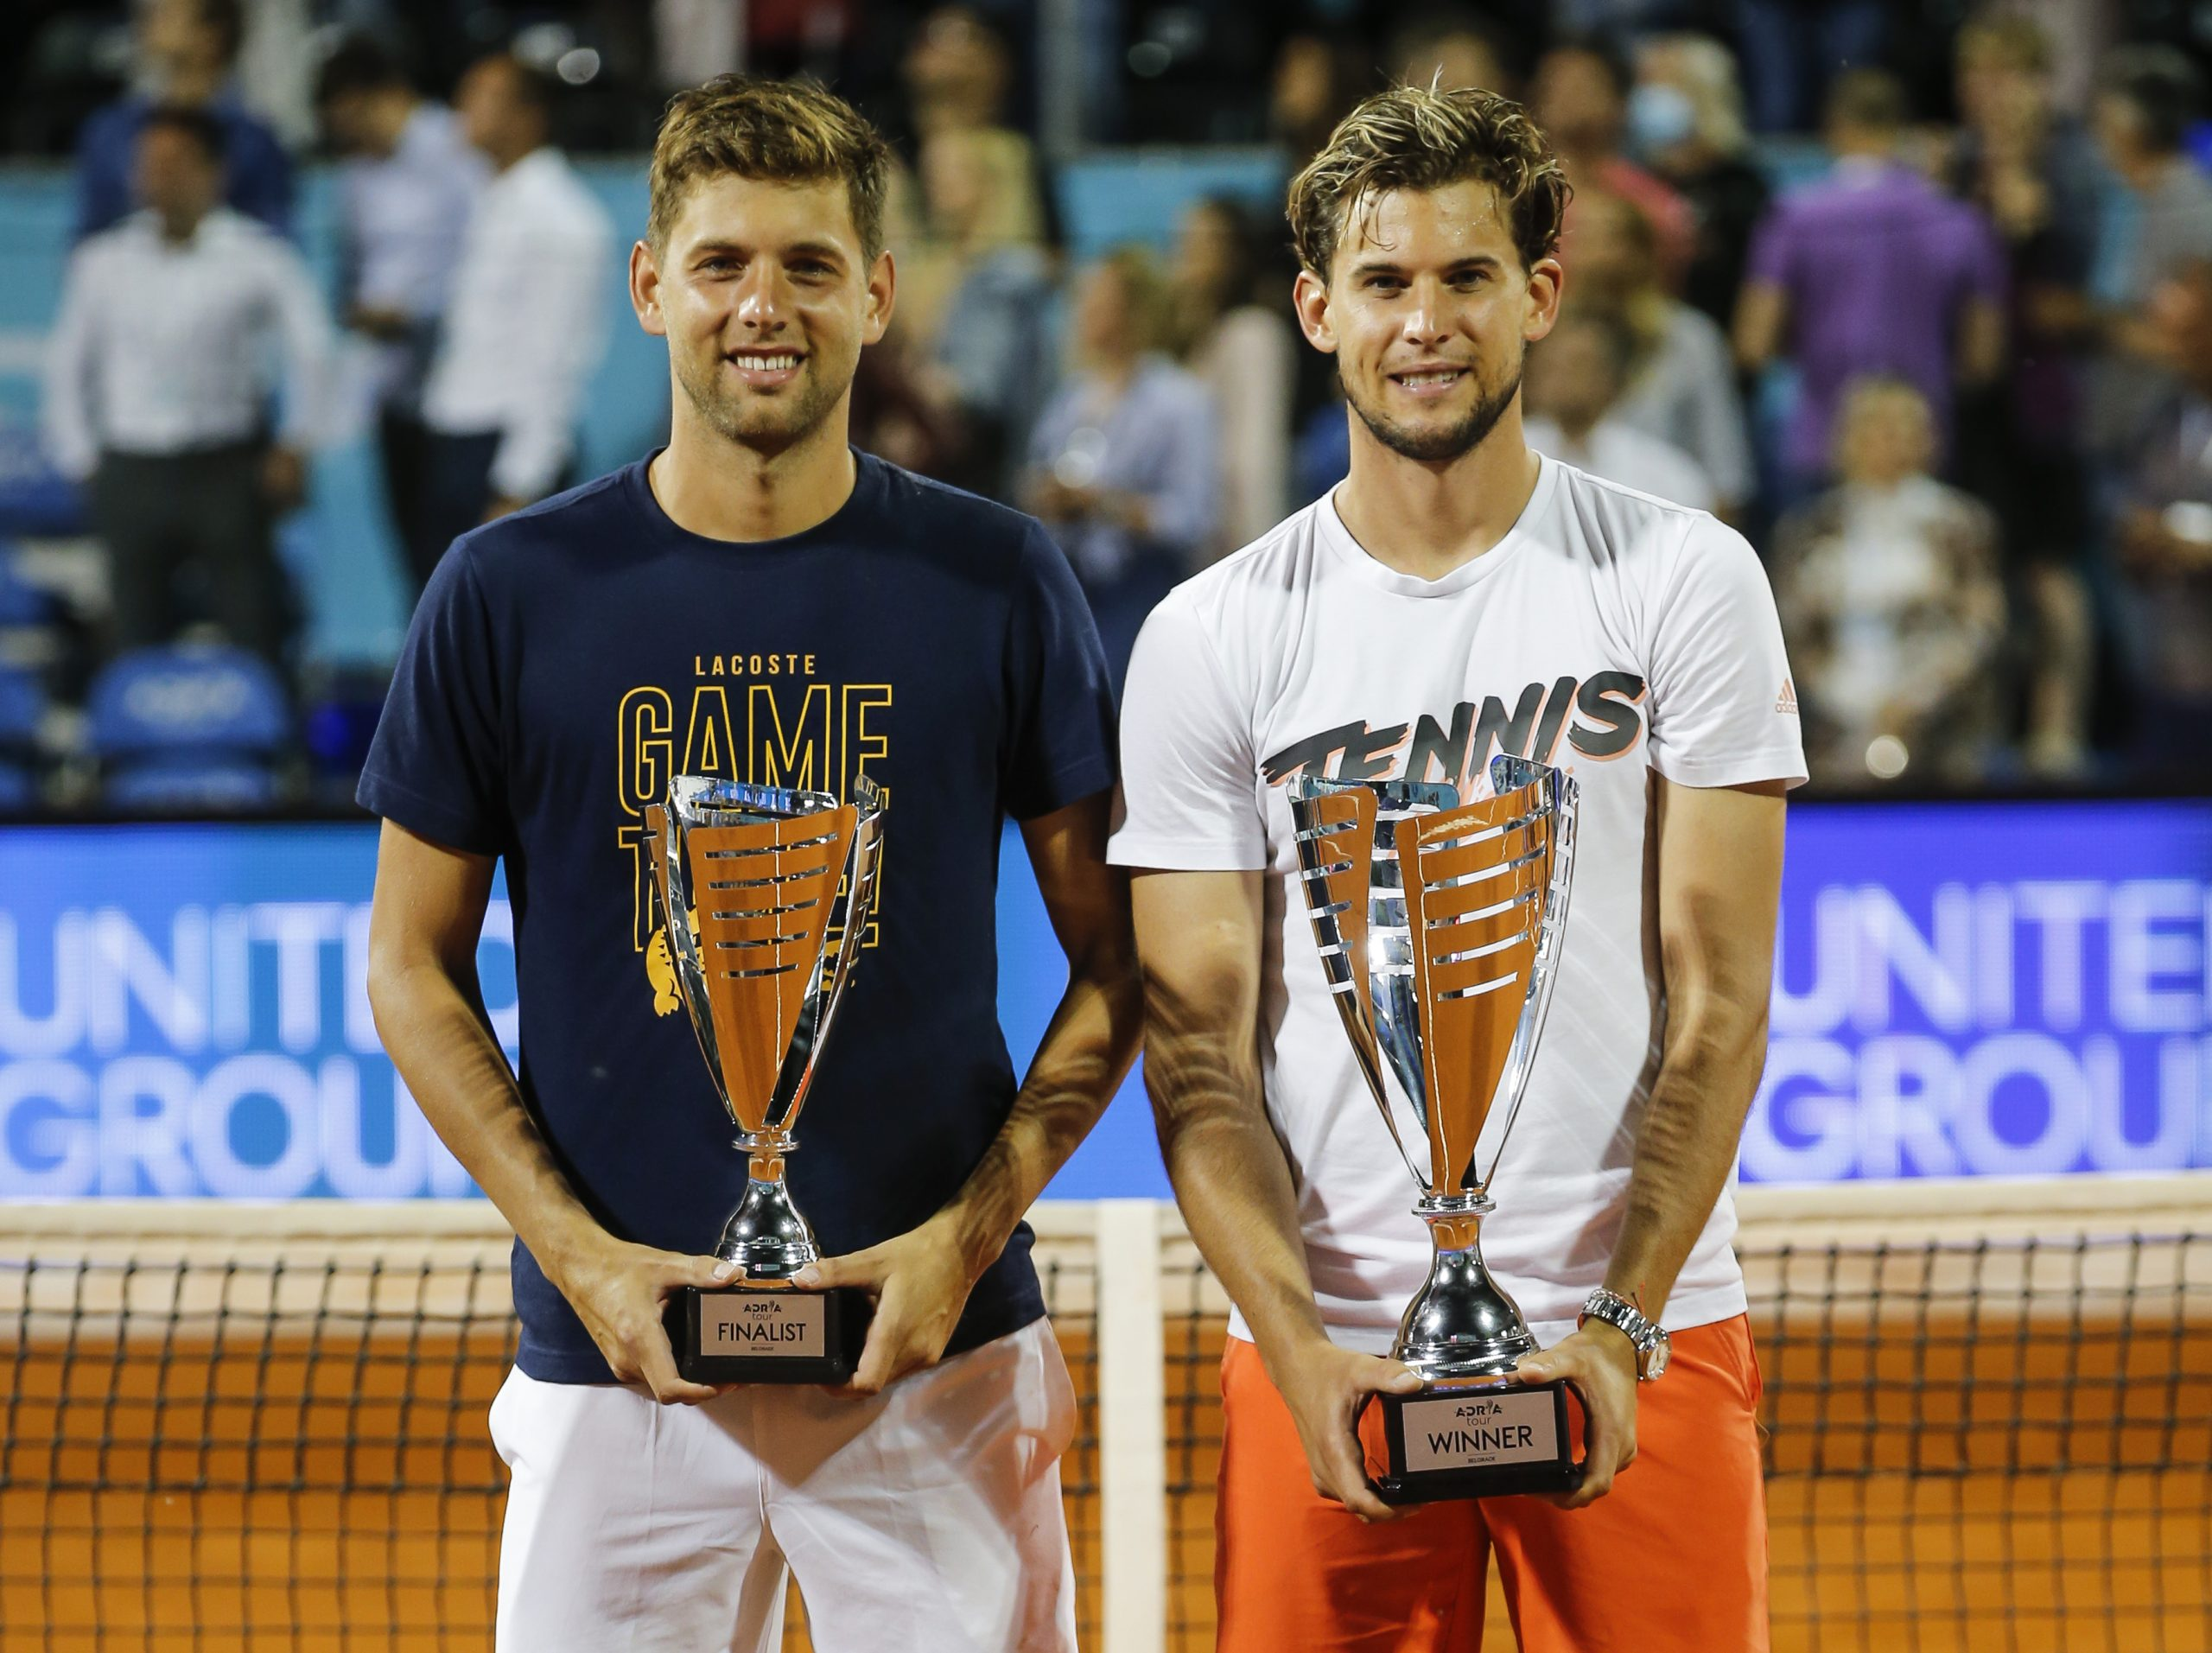 Dominic Thiem (right) of Austria and runner-up Filip Krajinovic (left) of Serbia pose with their trophies after the final match at the Adria Tour charity exhibition hosted by Novak Djokovic on June 14, 2020 in Belgrade, Serbia.